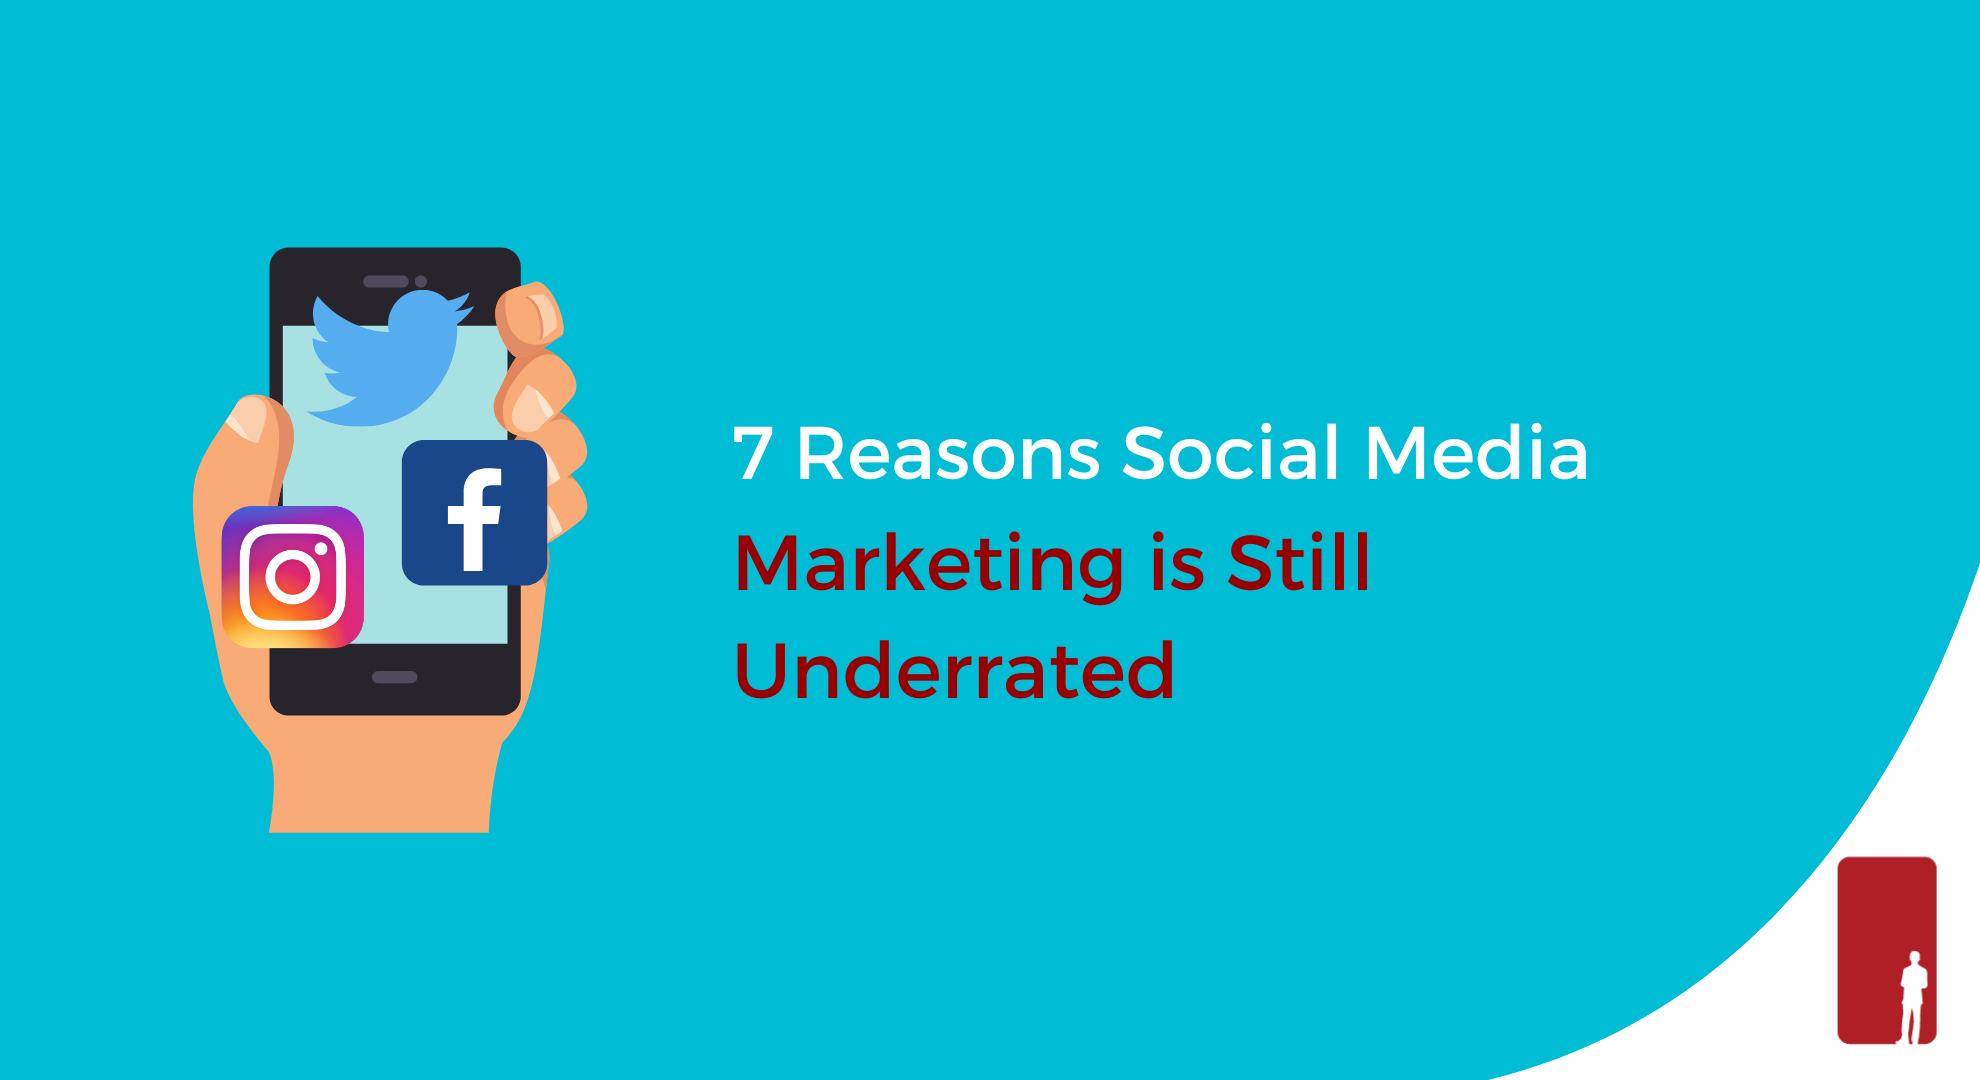 7 Reasons Social Media Marketing Is Still Underrated